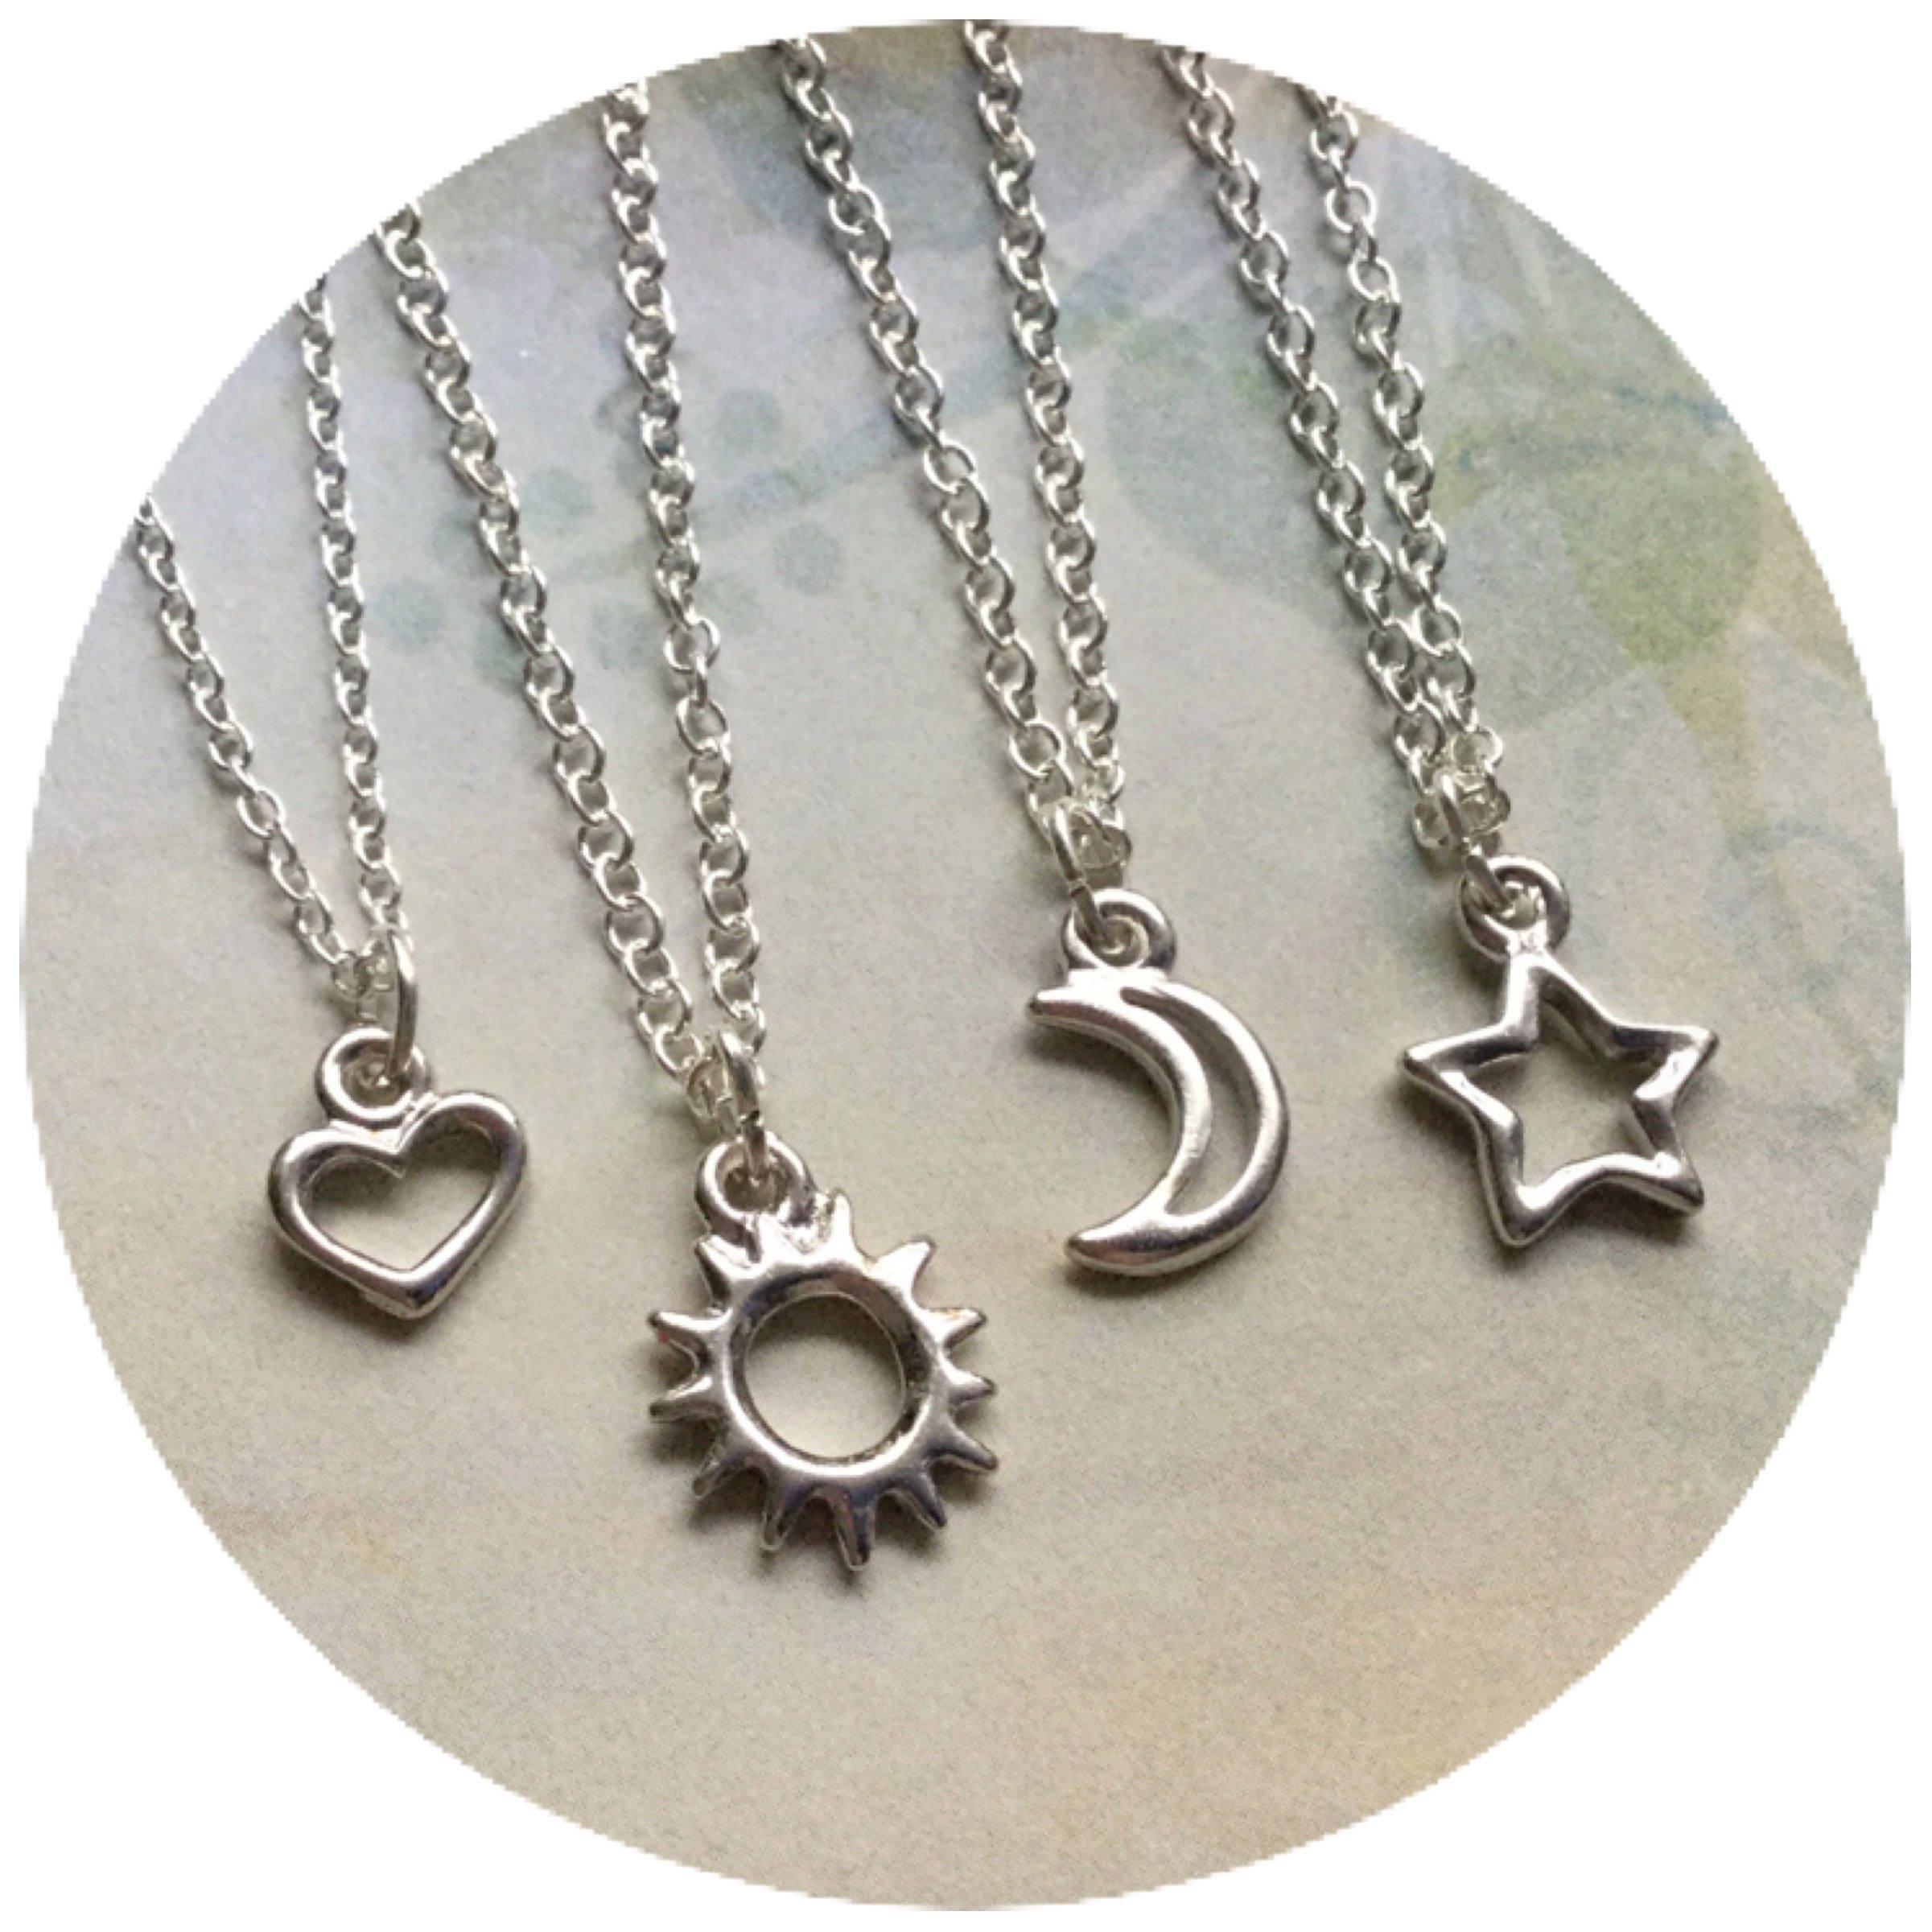 product hare necklace running starlight east the of west fullsizeoutput moon sun